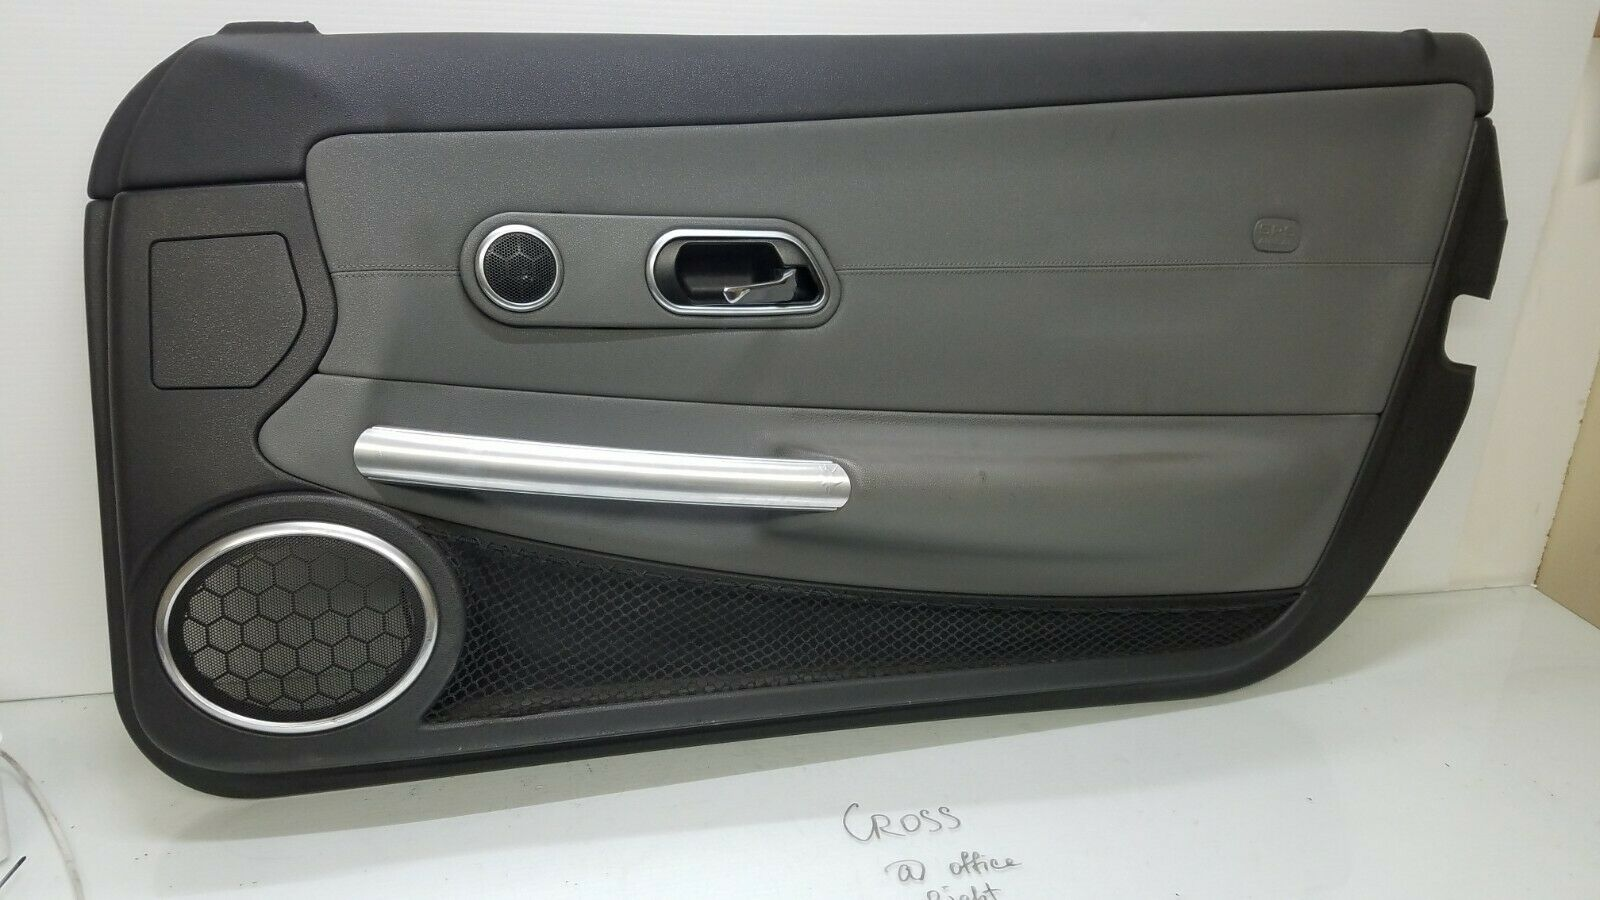 2004-2008 CHRYSLER CROSSFIRE RIGHT SIDE INTERIOR DOOR PANEL GRAY 1937200161 Does not apply cross